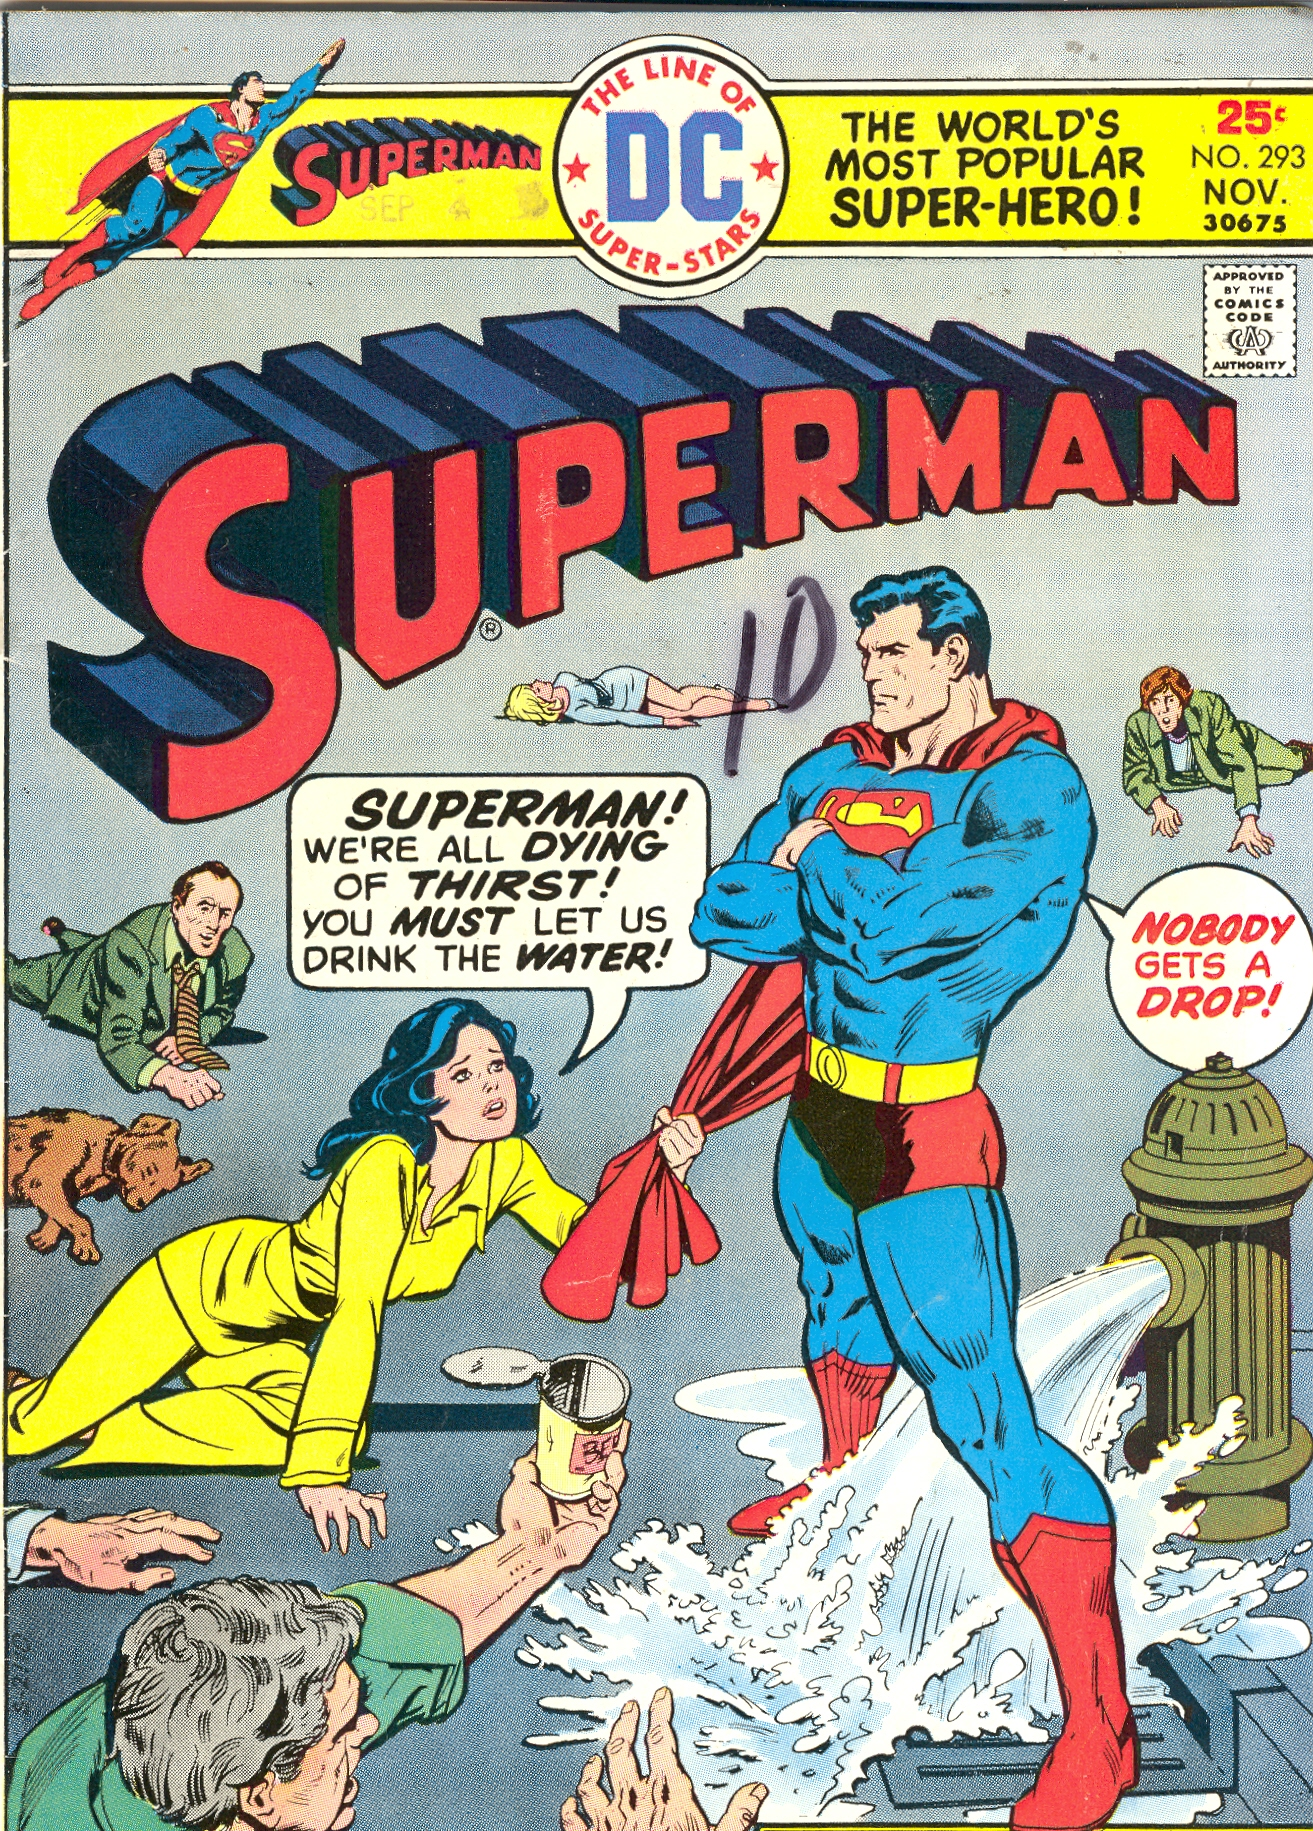 Crazy Comic Covers: Superman #293;The miracle of Thirsty Thursday